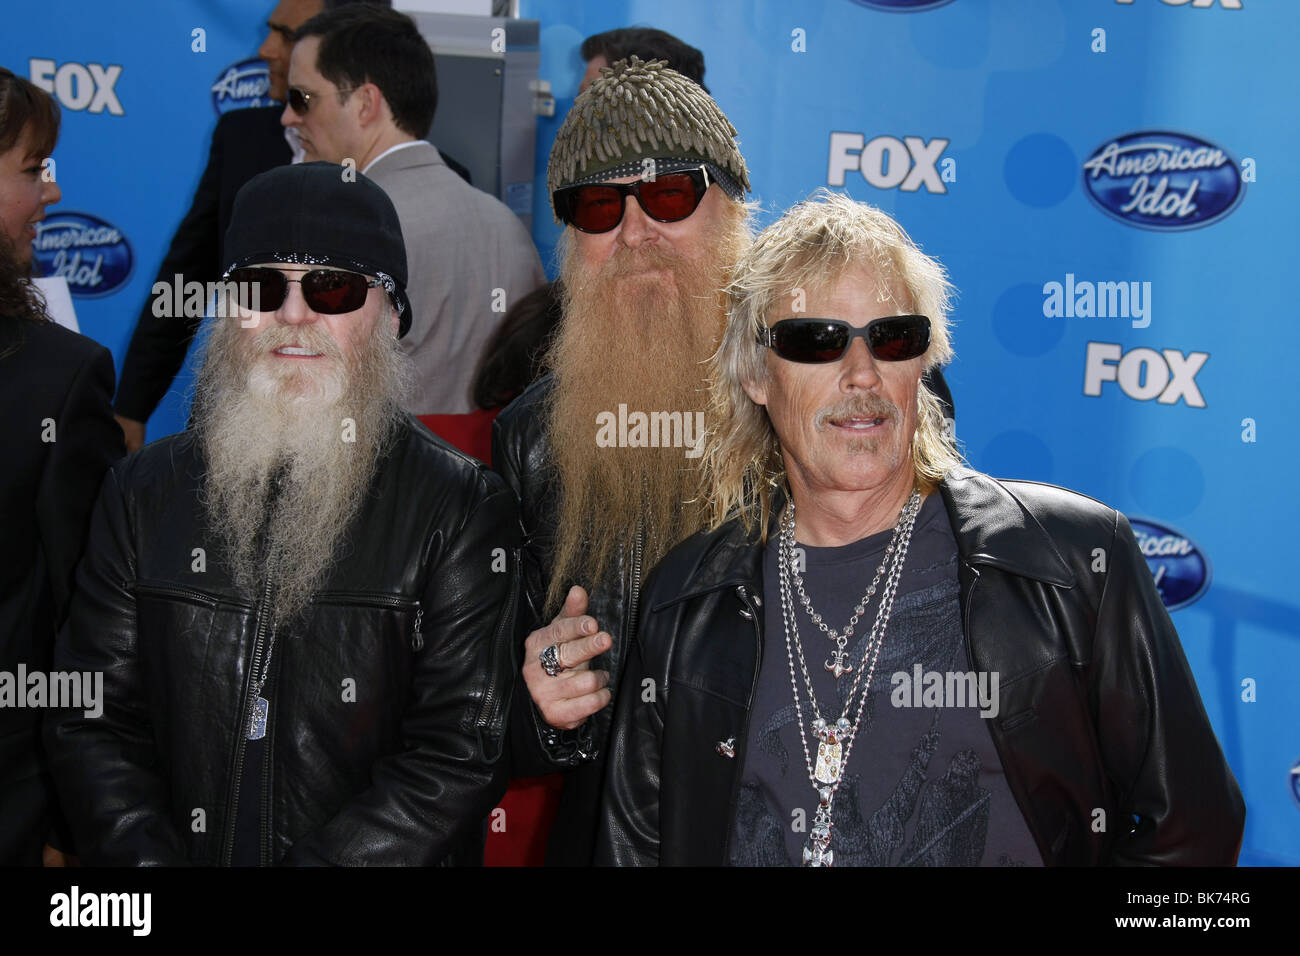 ZZ TOP AMERICAN IDOL GRAND FINALE DAY 2 NOKIA THEATRE DOWNTOWN LOS ANGELES USA 21 May 2008 - Stock Image